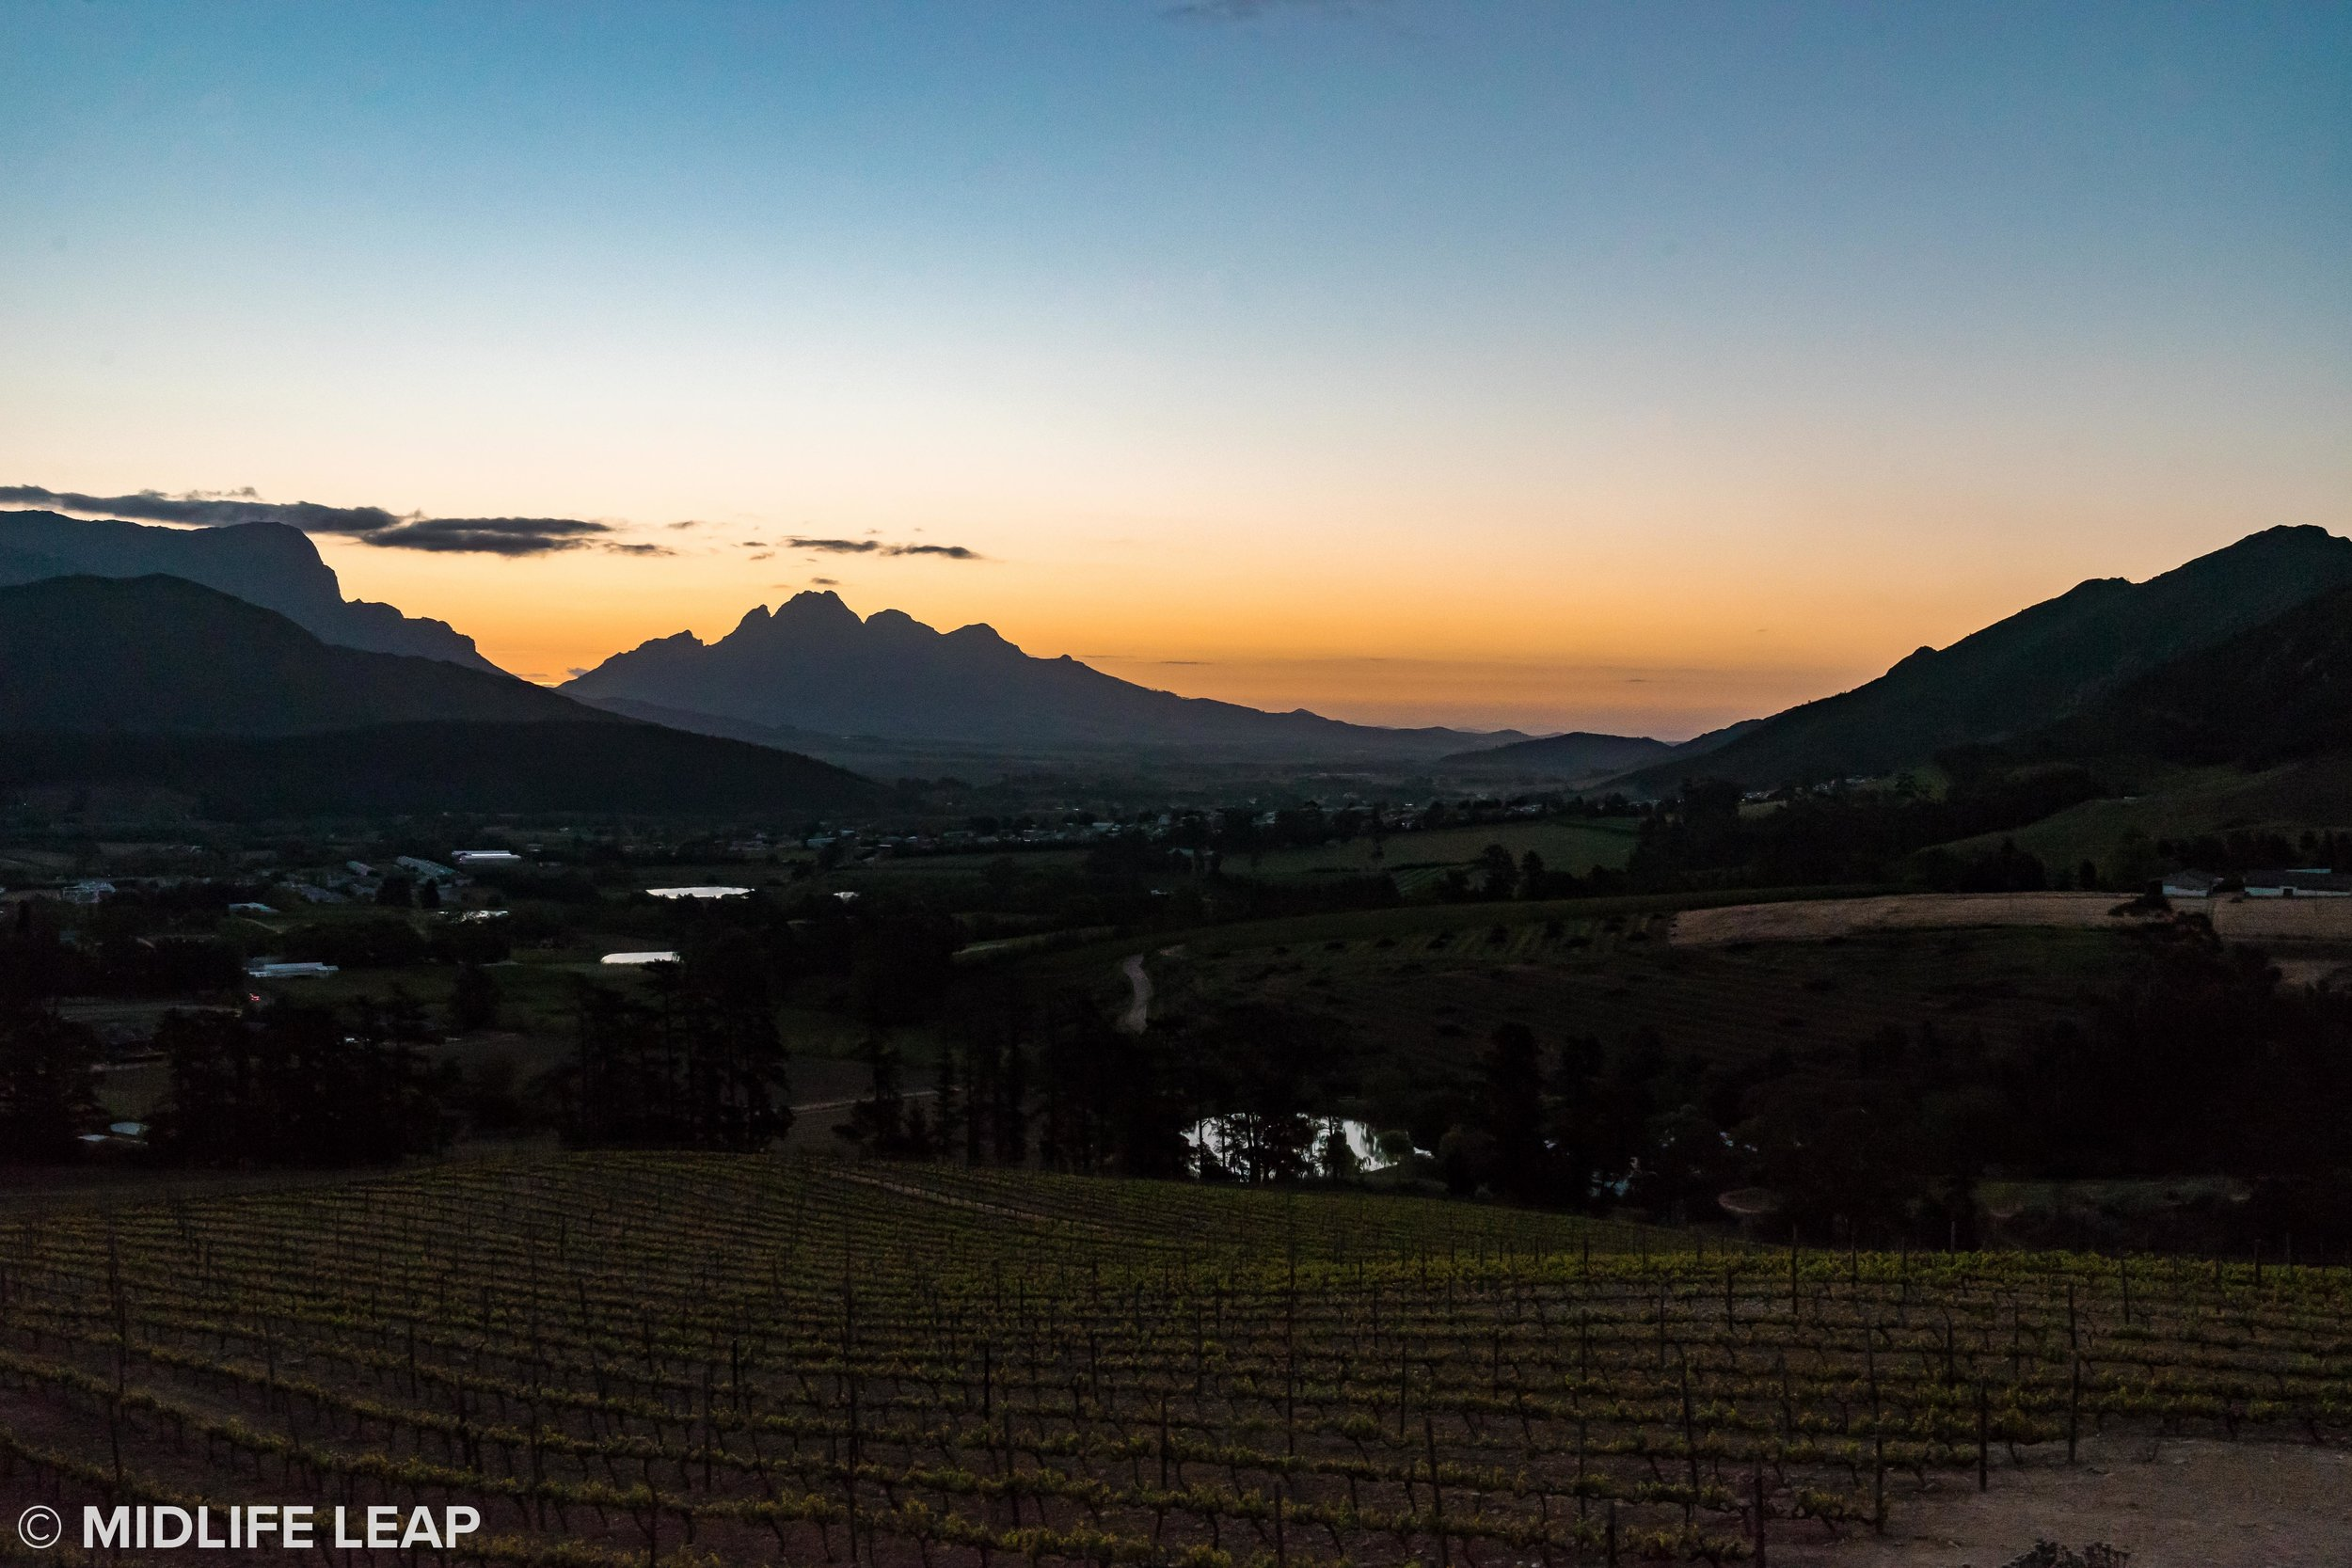 The beautiful landscape of Franschhoek